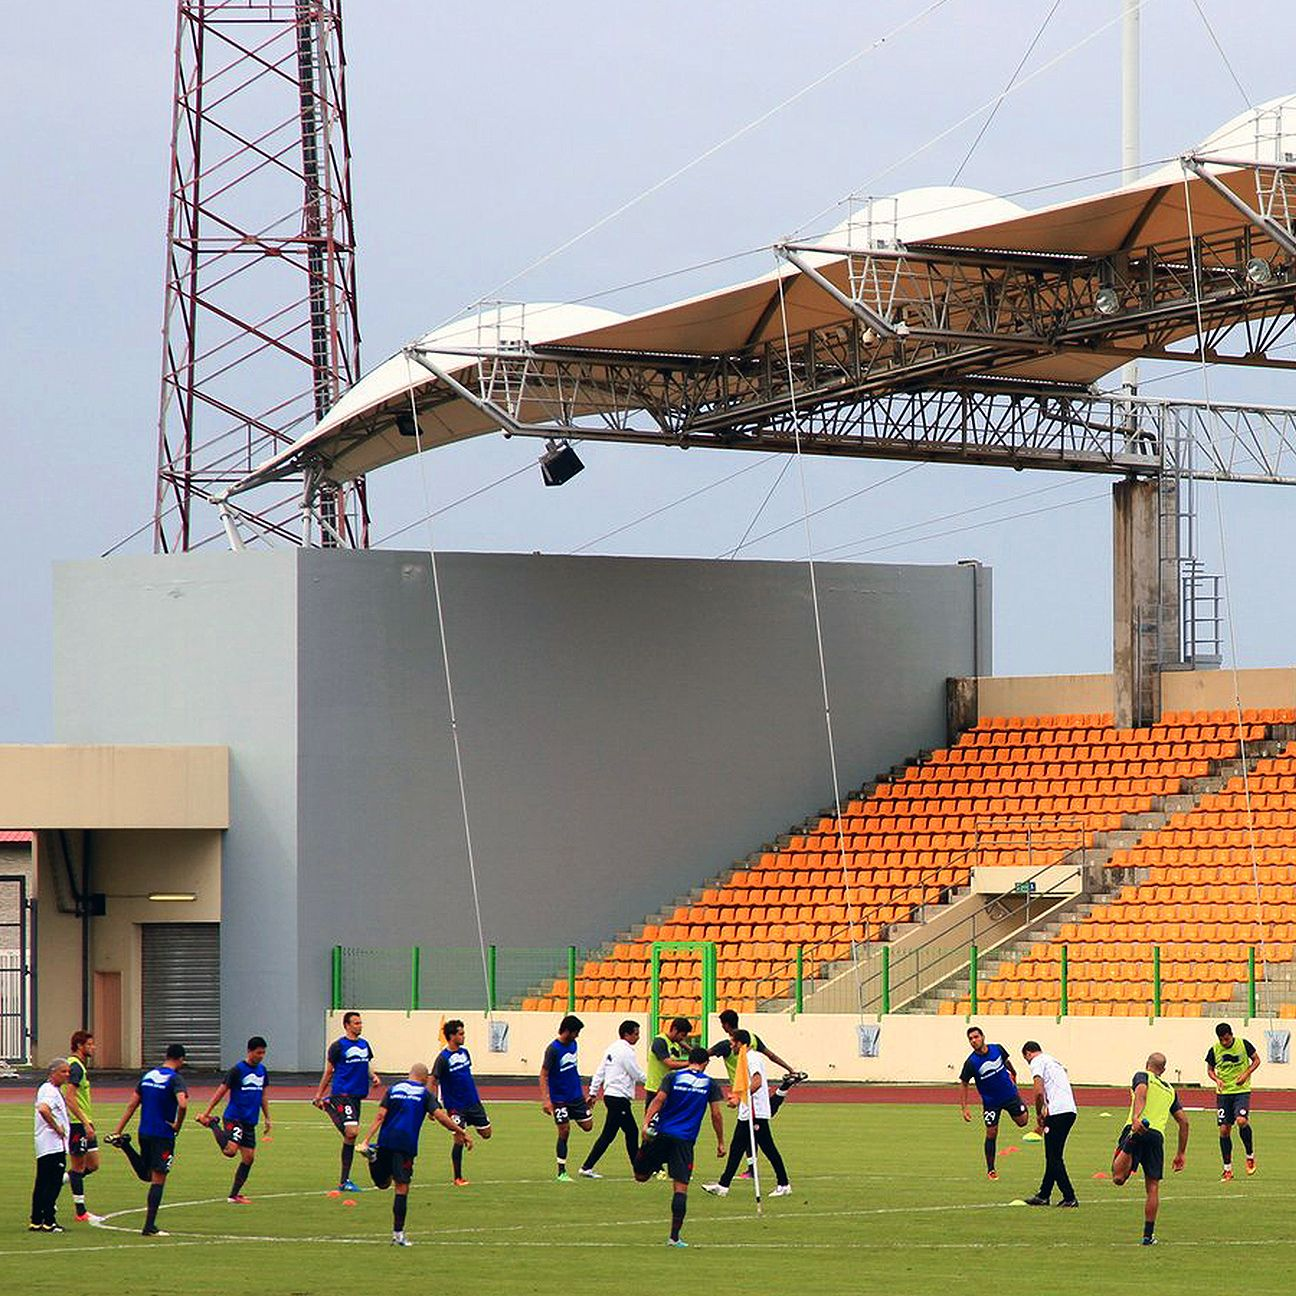 Olympic Stadium in Malabo will be one of the four venues for the 2015 African Nations' Cup in Equatorial Guinea.